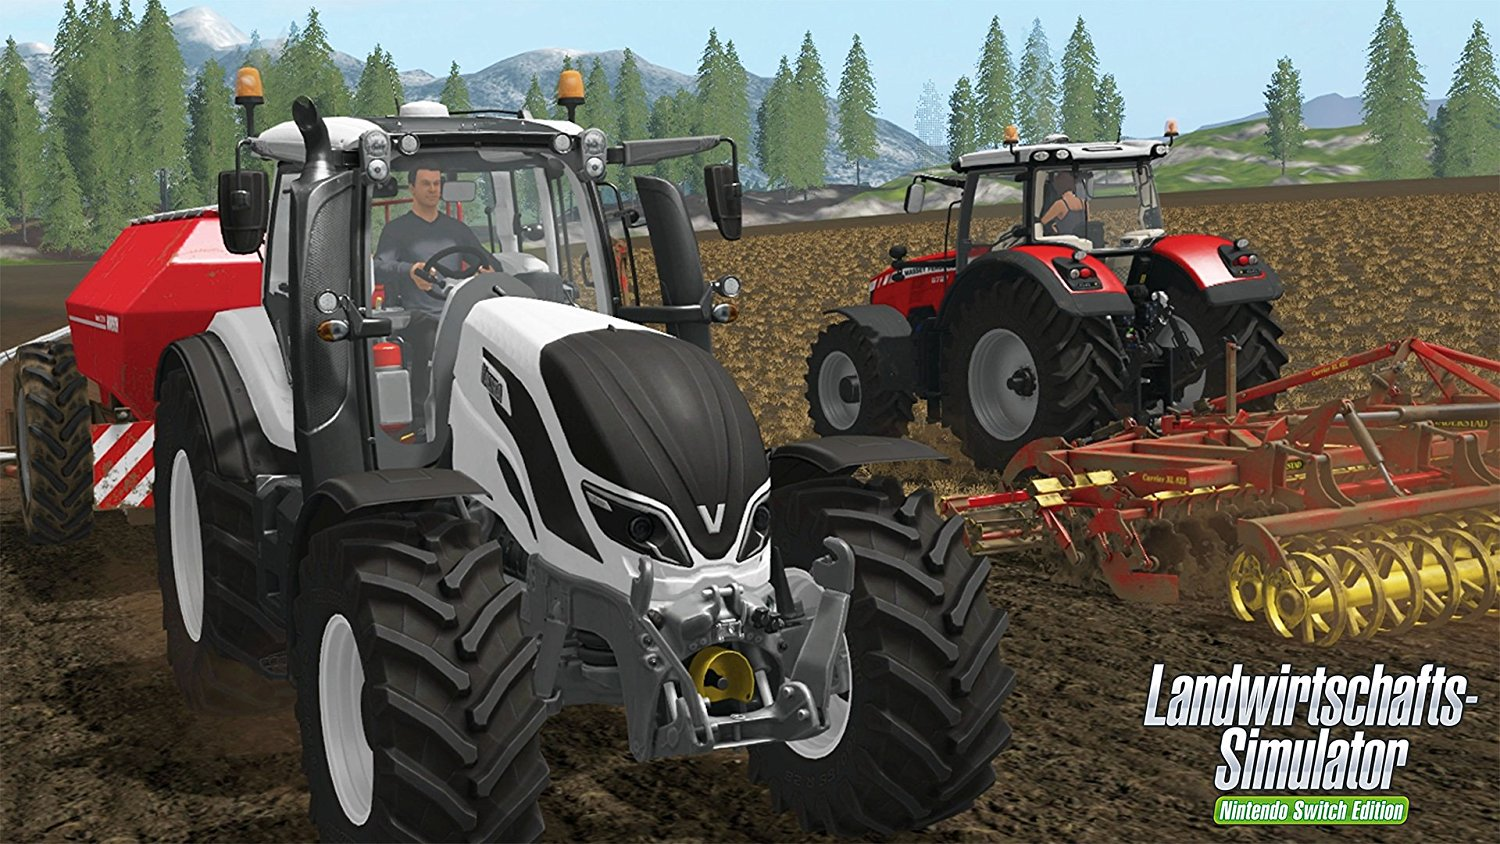 Landwirtschafts-Simulator - Nintendo Switch Edition